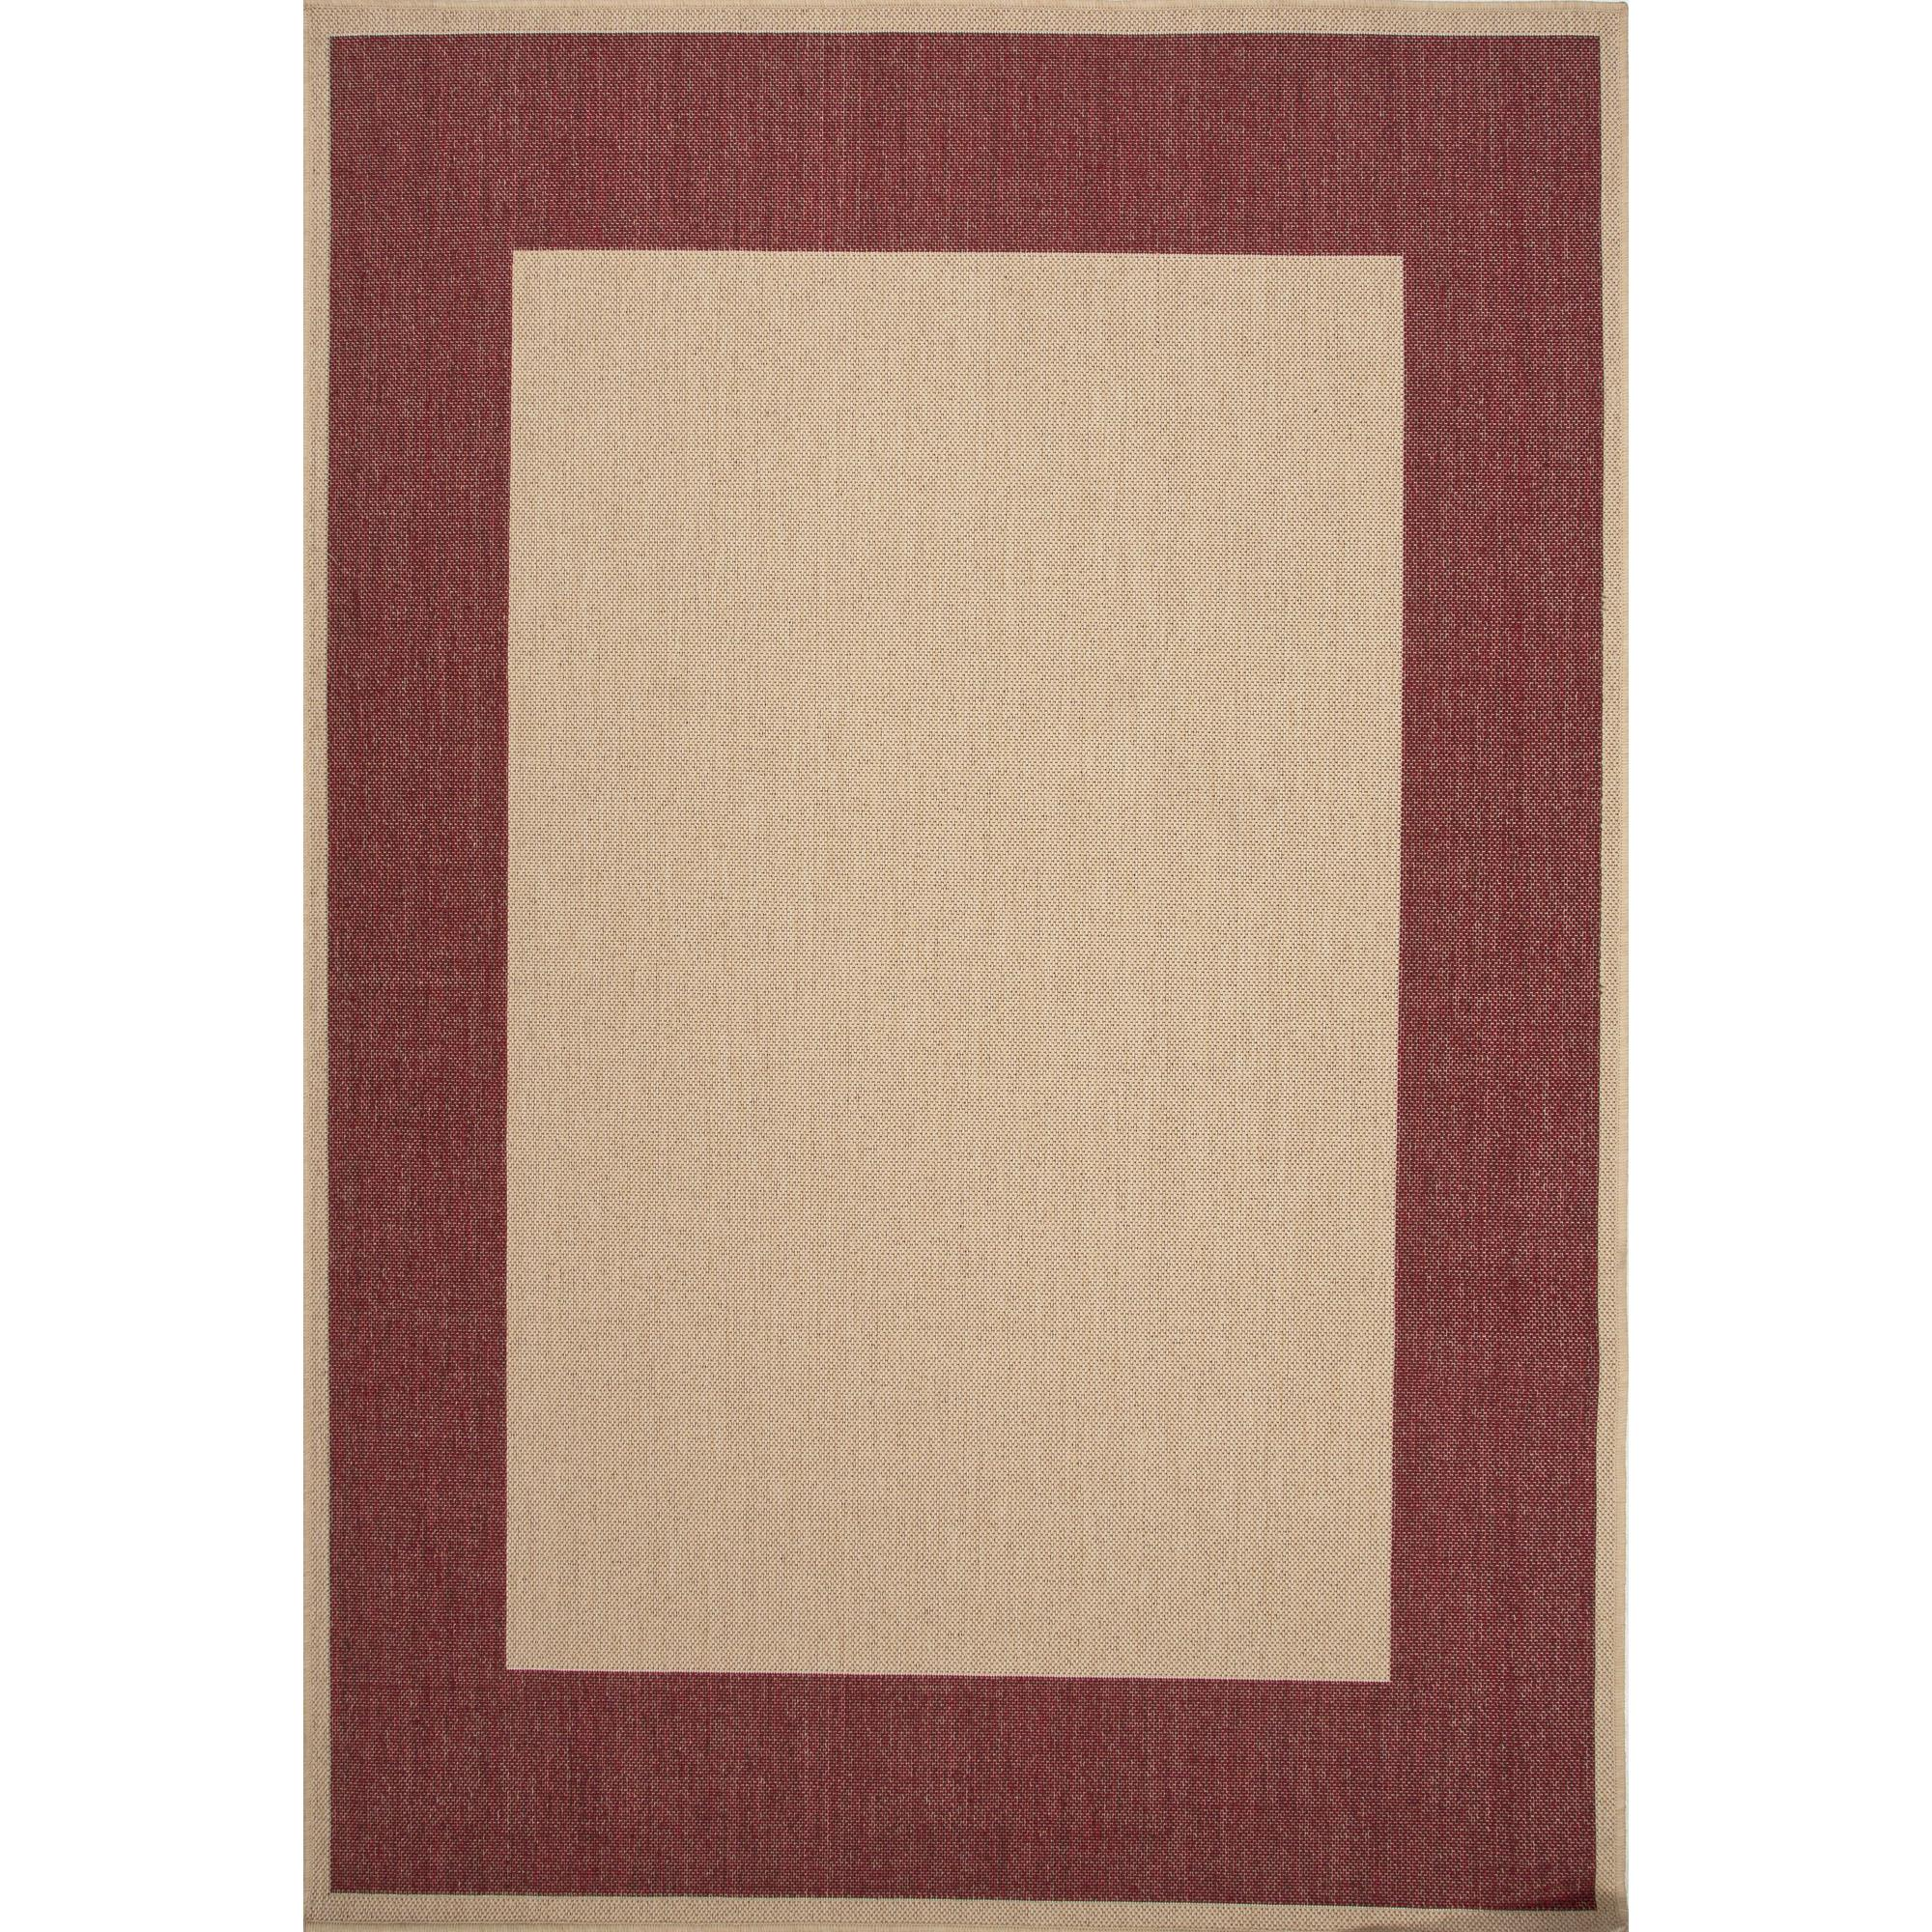 JAIPUR Rugs Breeze 5.3 x 7.6 Rug - Item Number: RUG121465